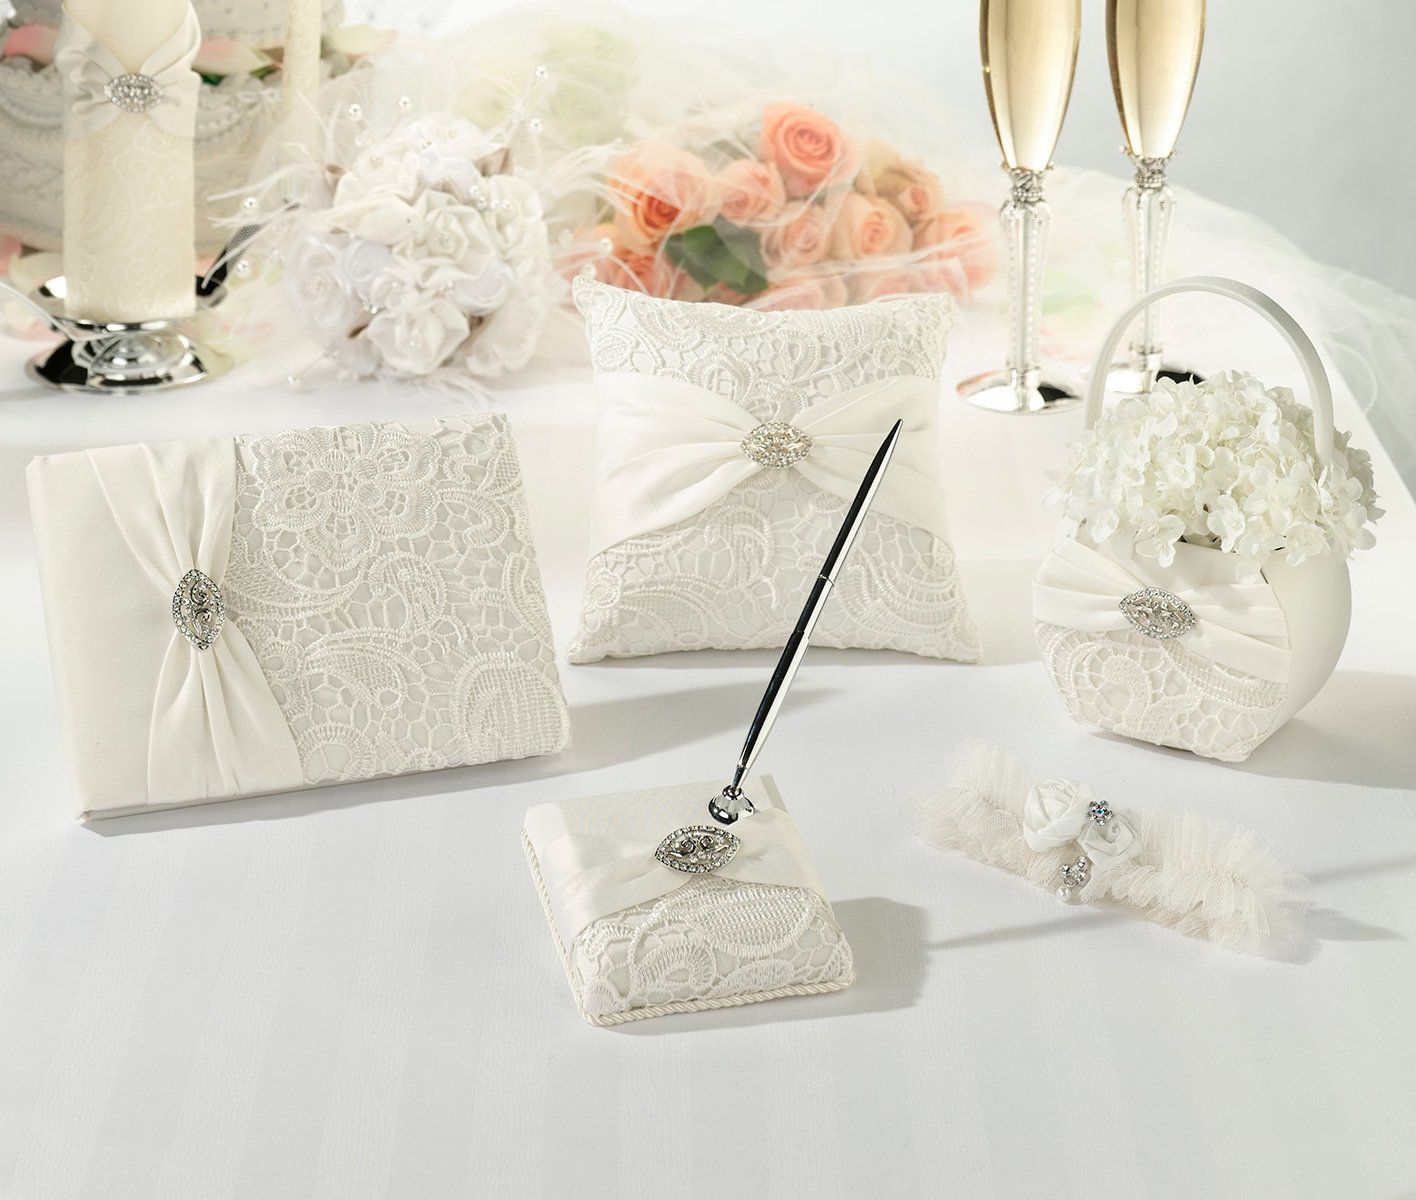 Vintage Lace Wedding Set Products Pinterest Products